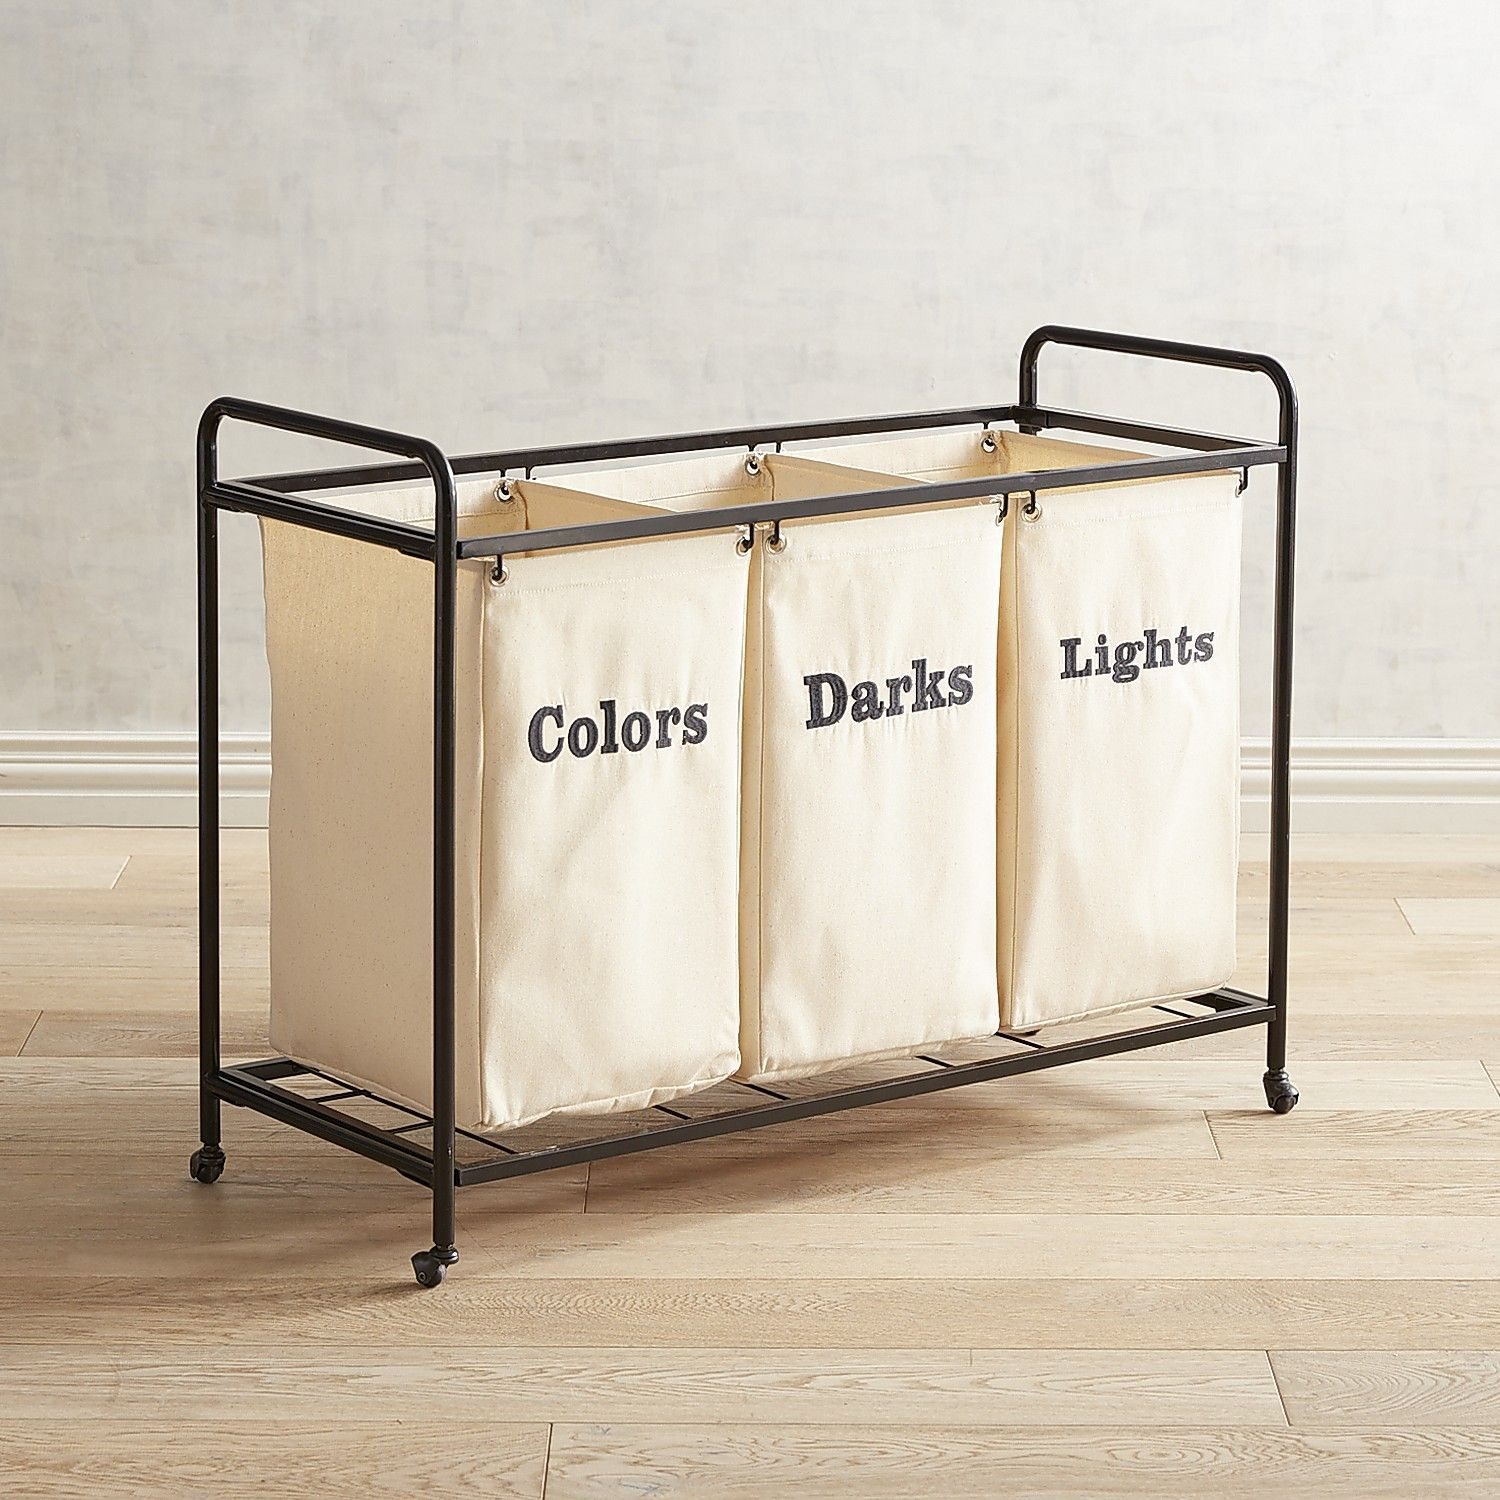 Make Laundry Day Easy Our Mobile Cart Offers Three Woven Cotton